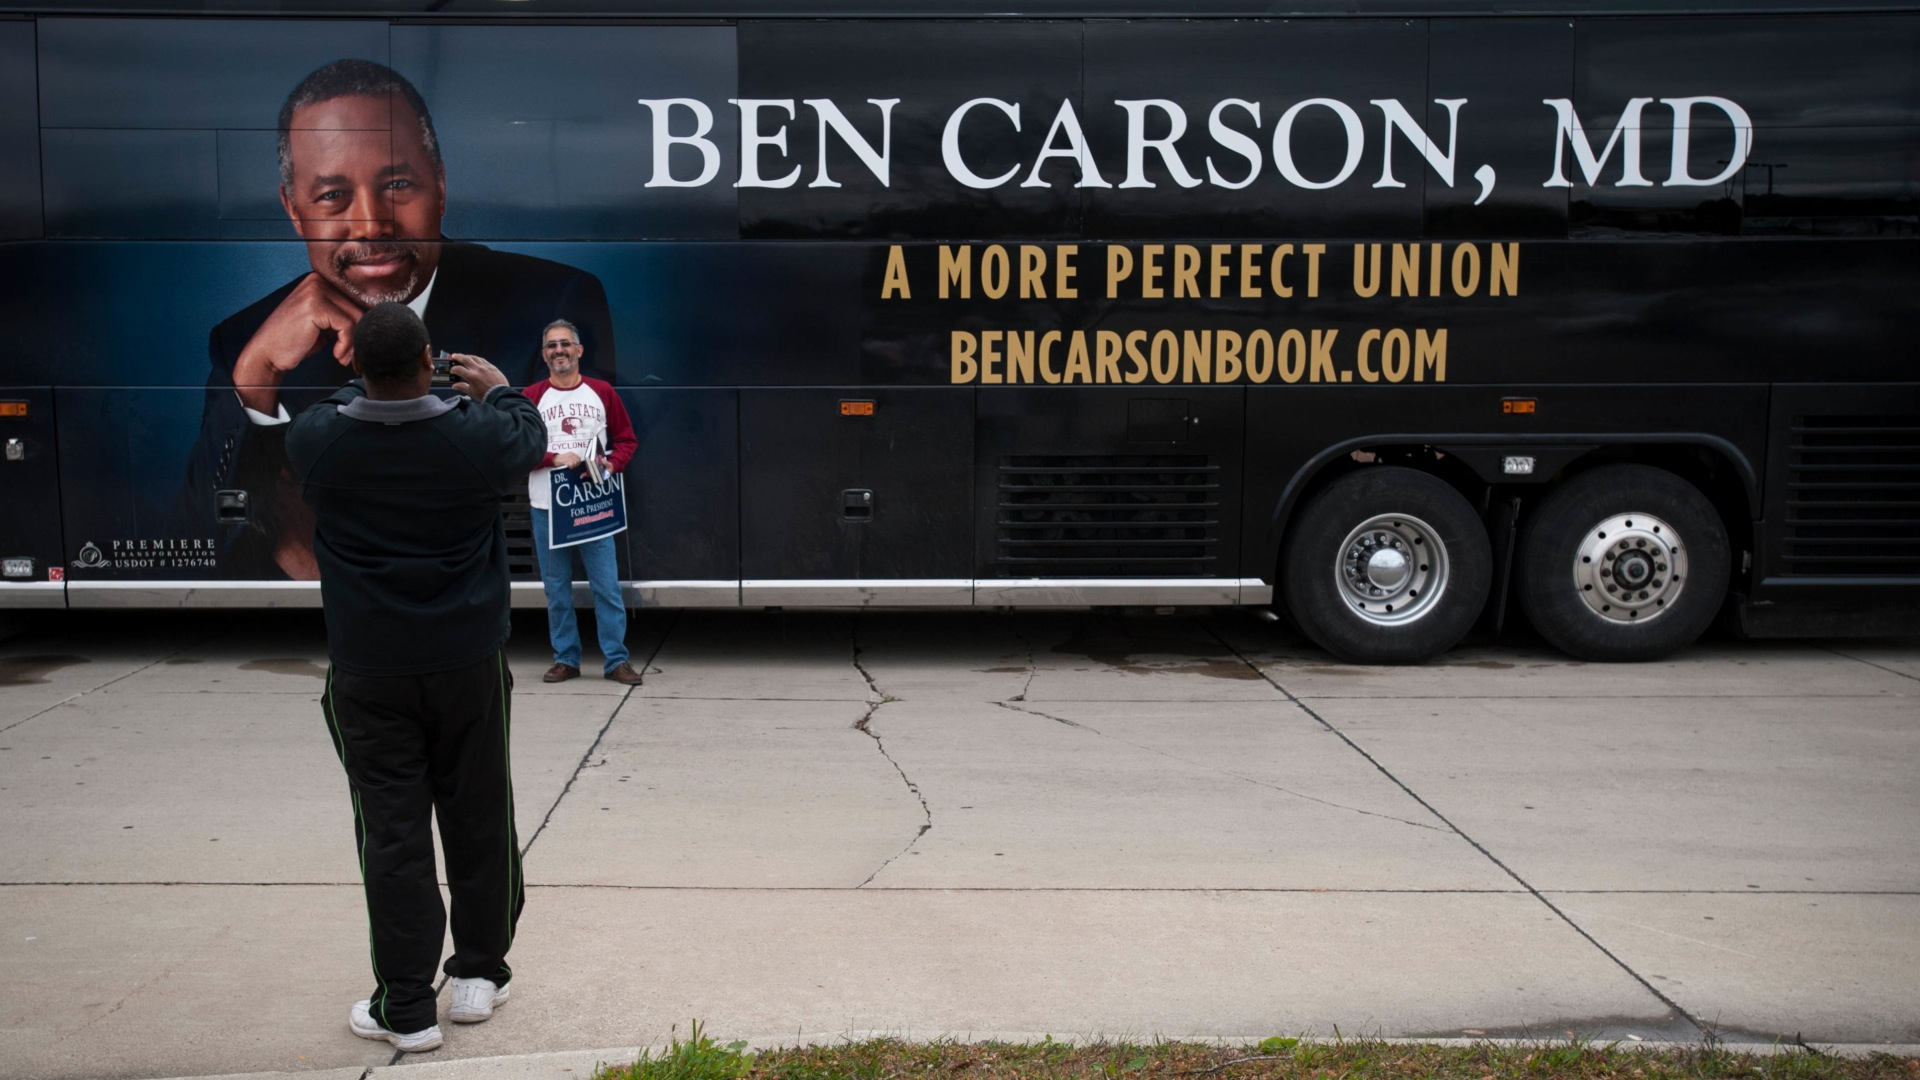 Have Ben Carson's comments doubting the Rapture and hell contributed to his decline?